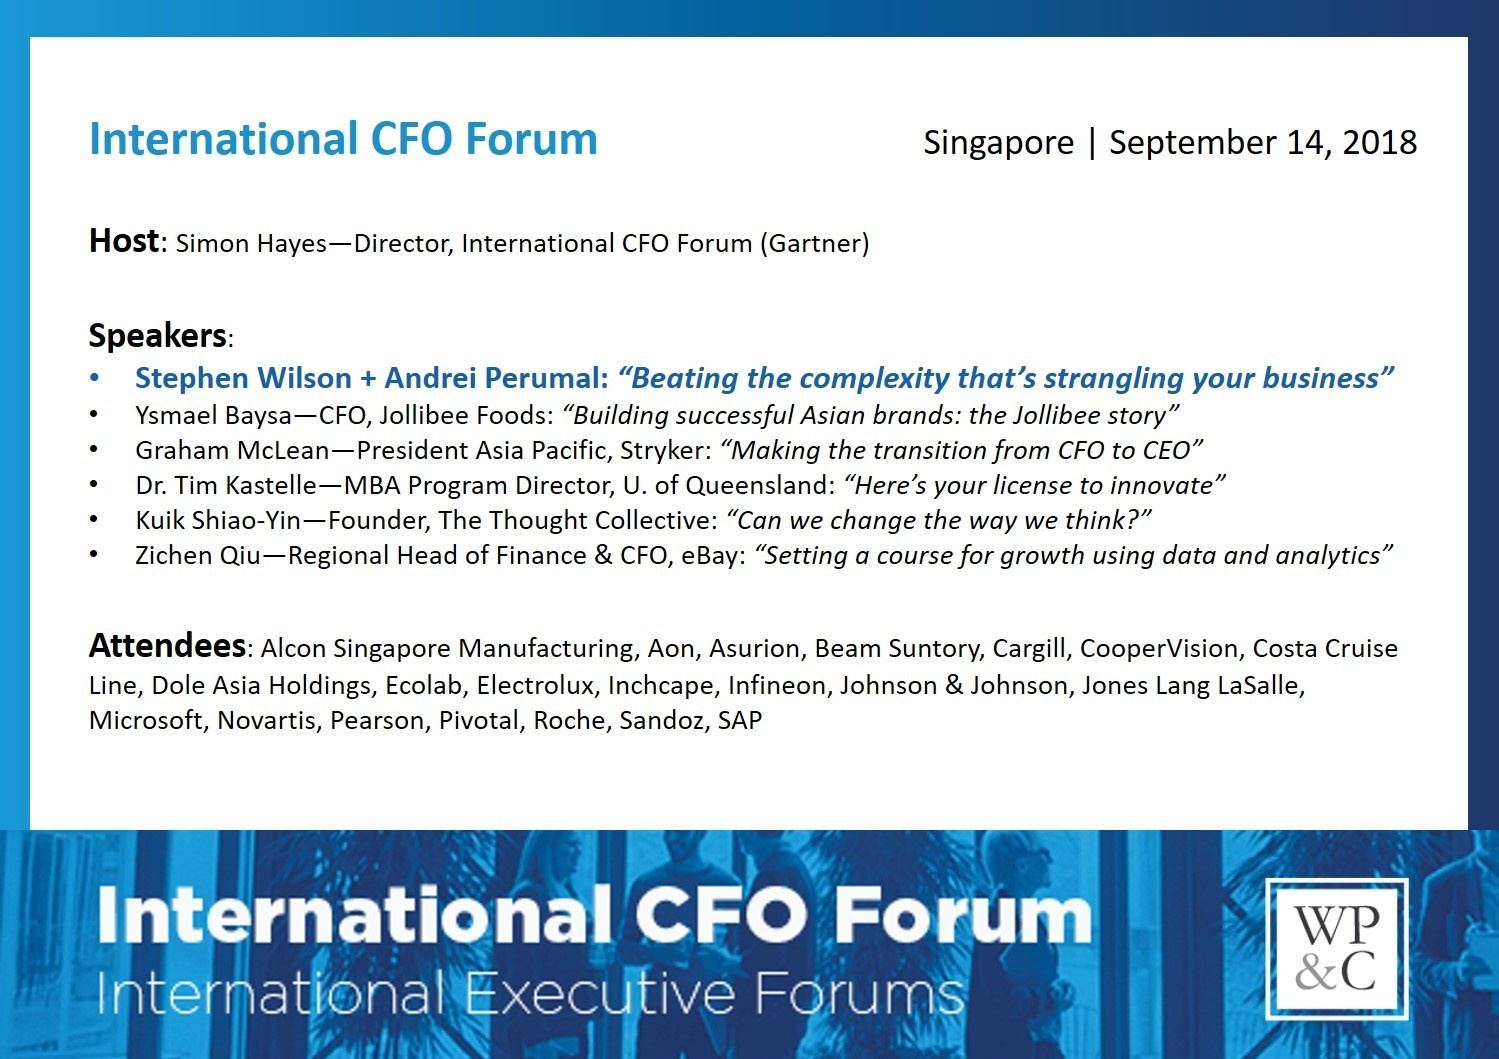 180913 - SWAP at International CFO Forum (2)